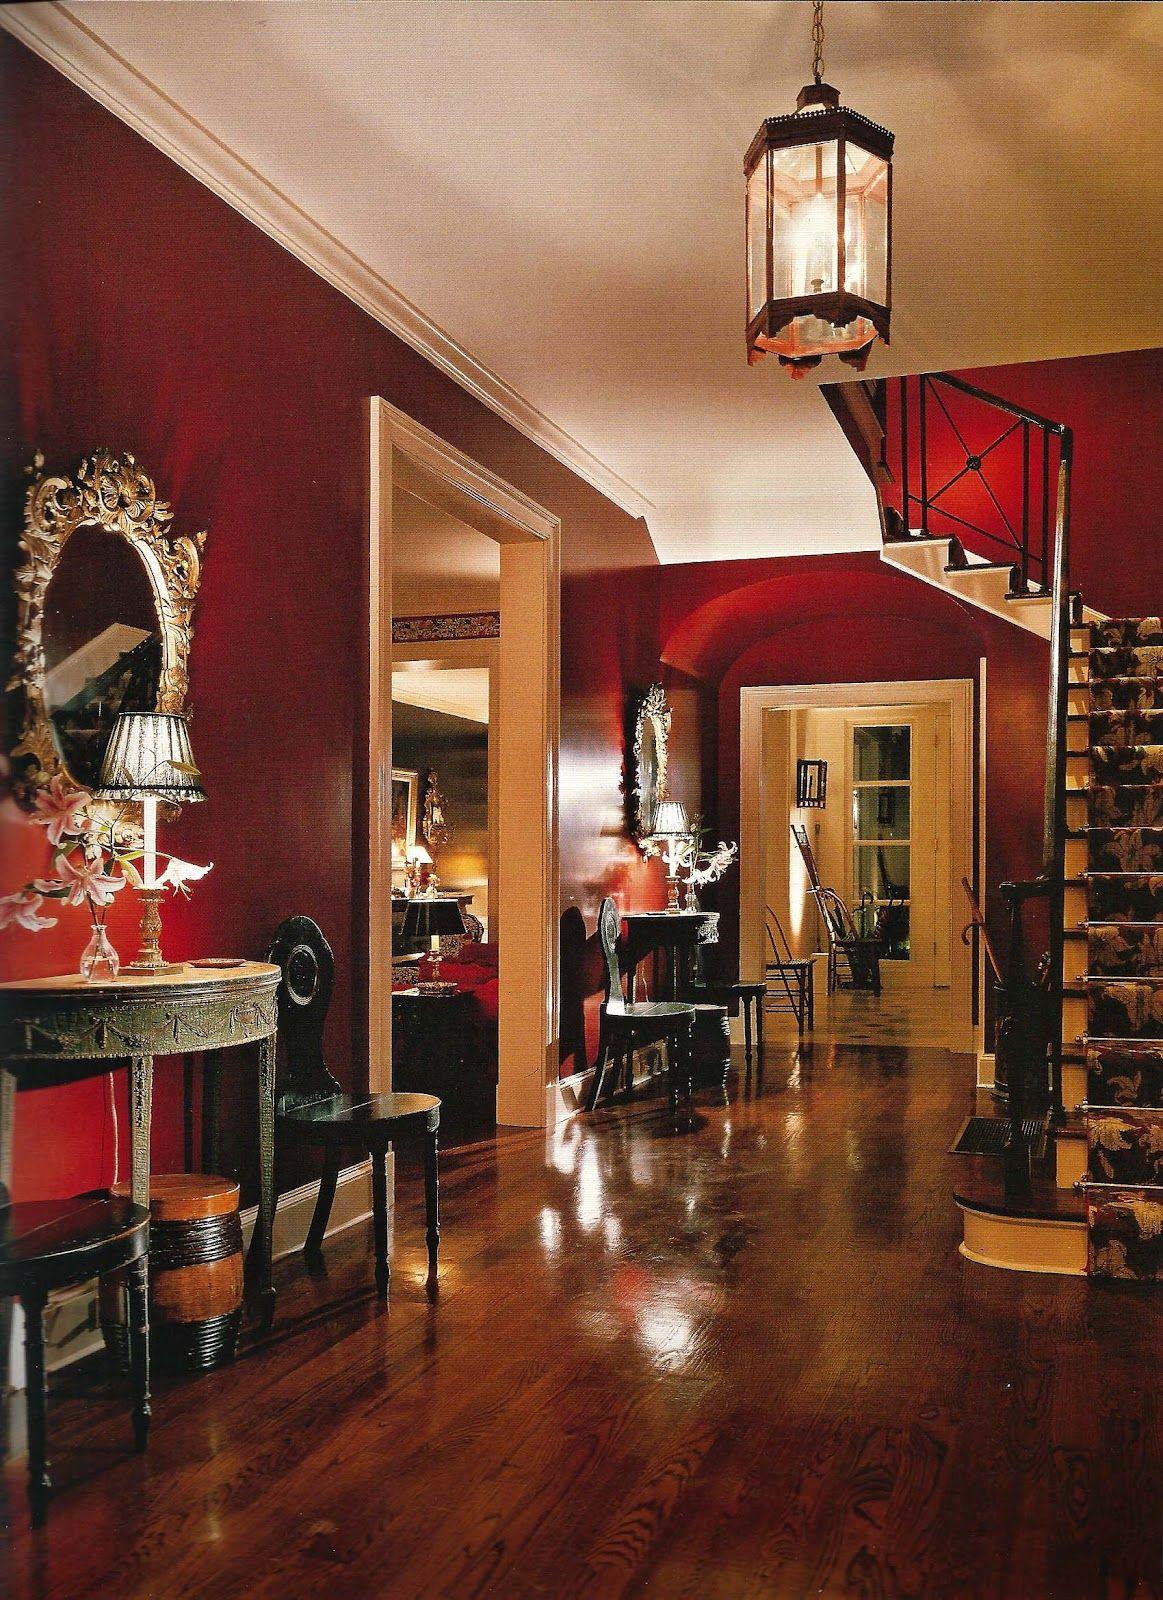 Red Wall Living Room Love The Rich Colors And Contrast In This Space Deep Reds